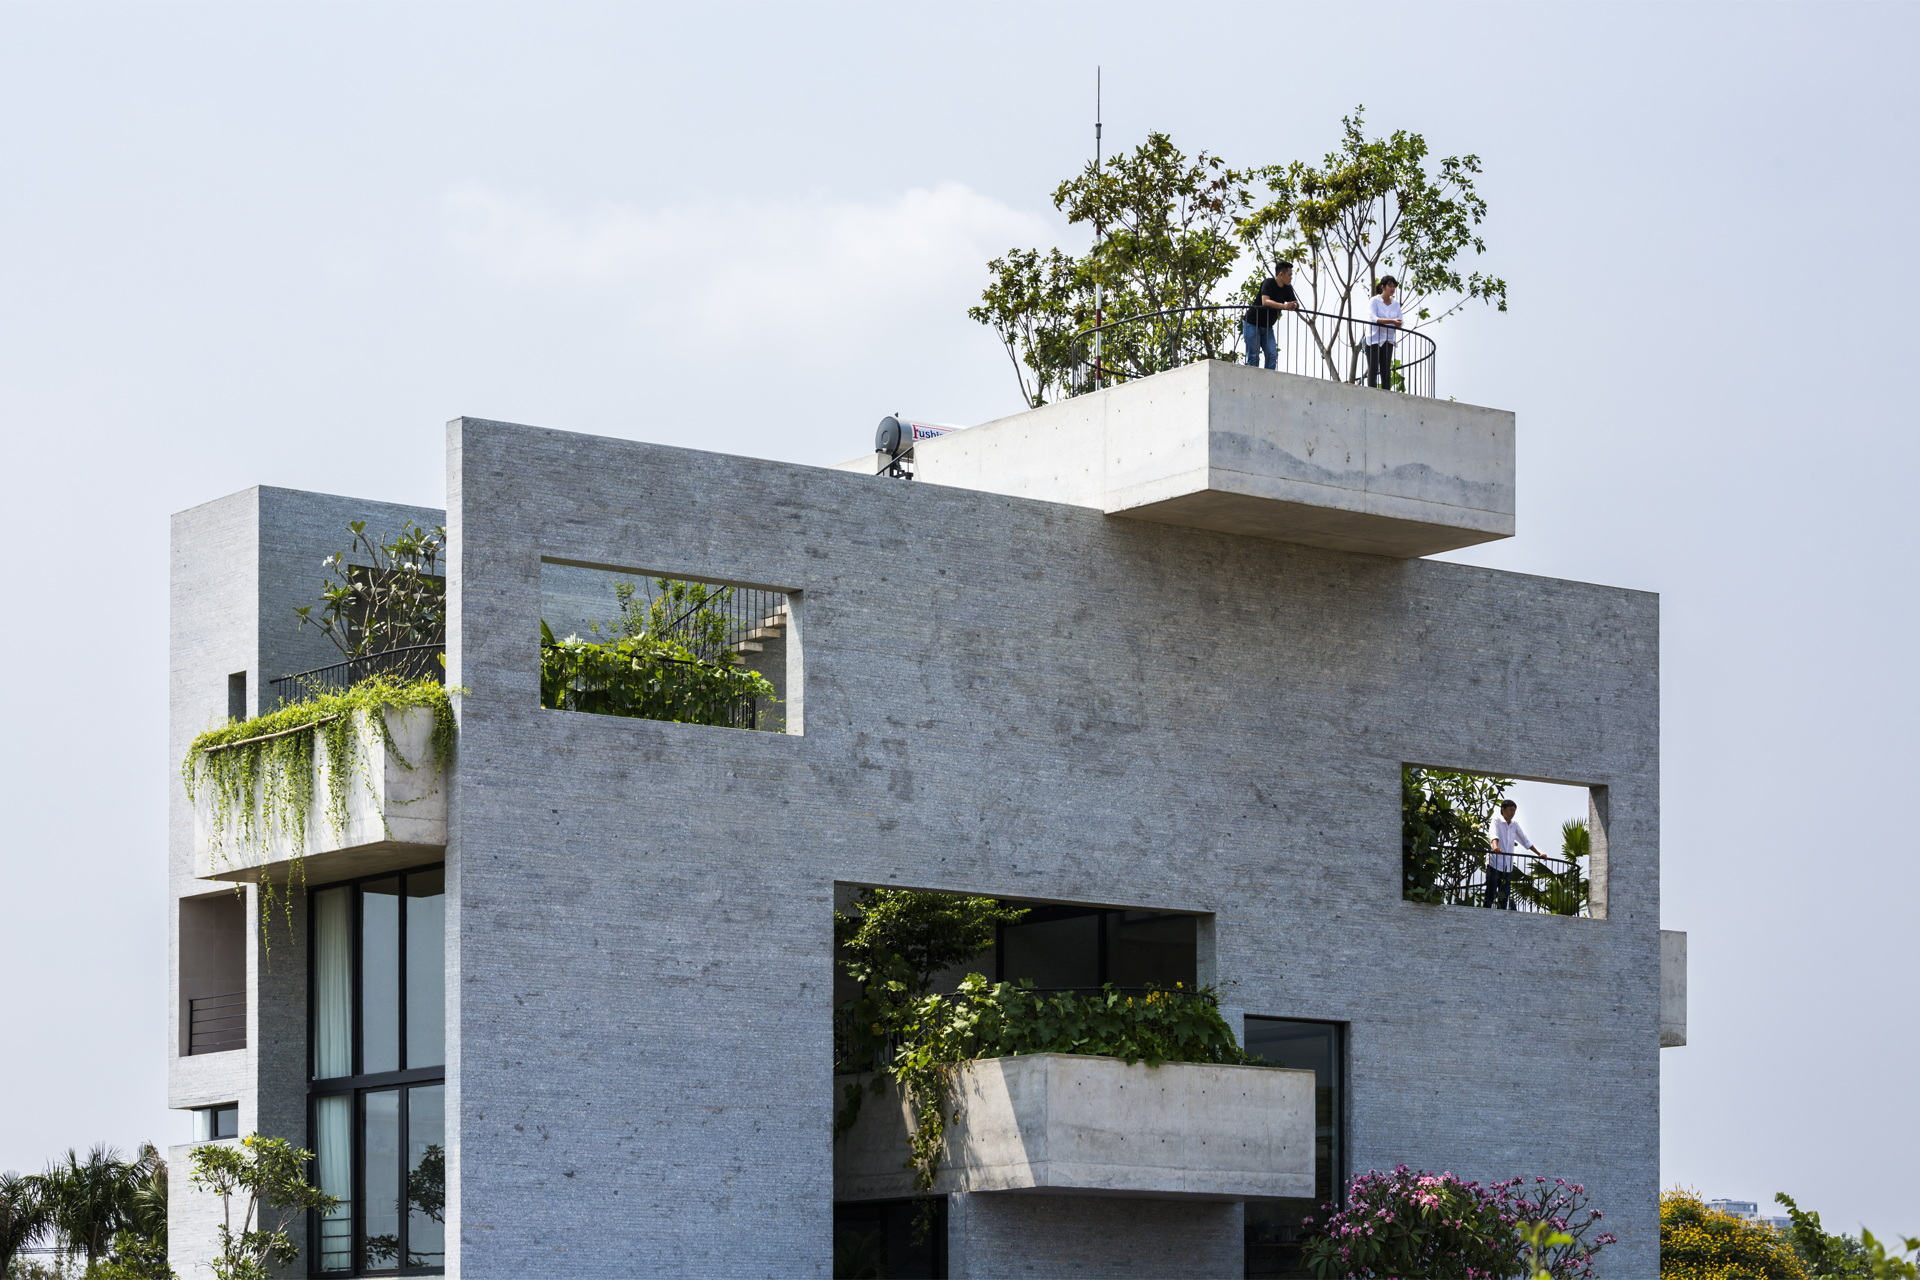 Vo Trong Nghia: The Bihn house and the transformation of Ho Chi Minh